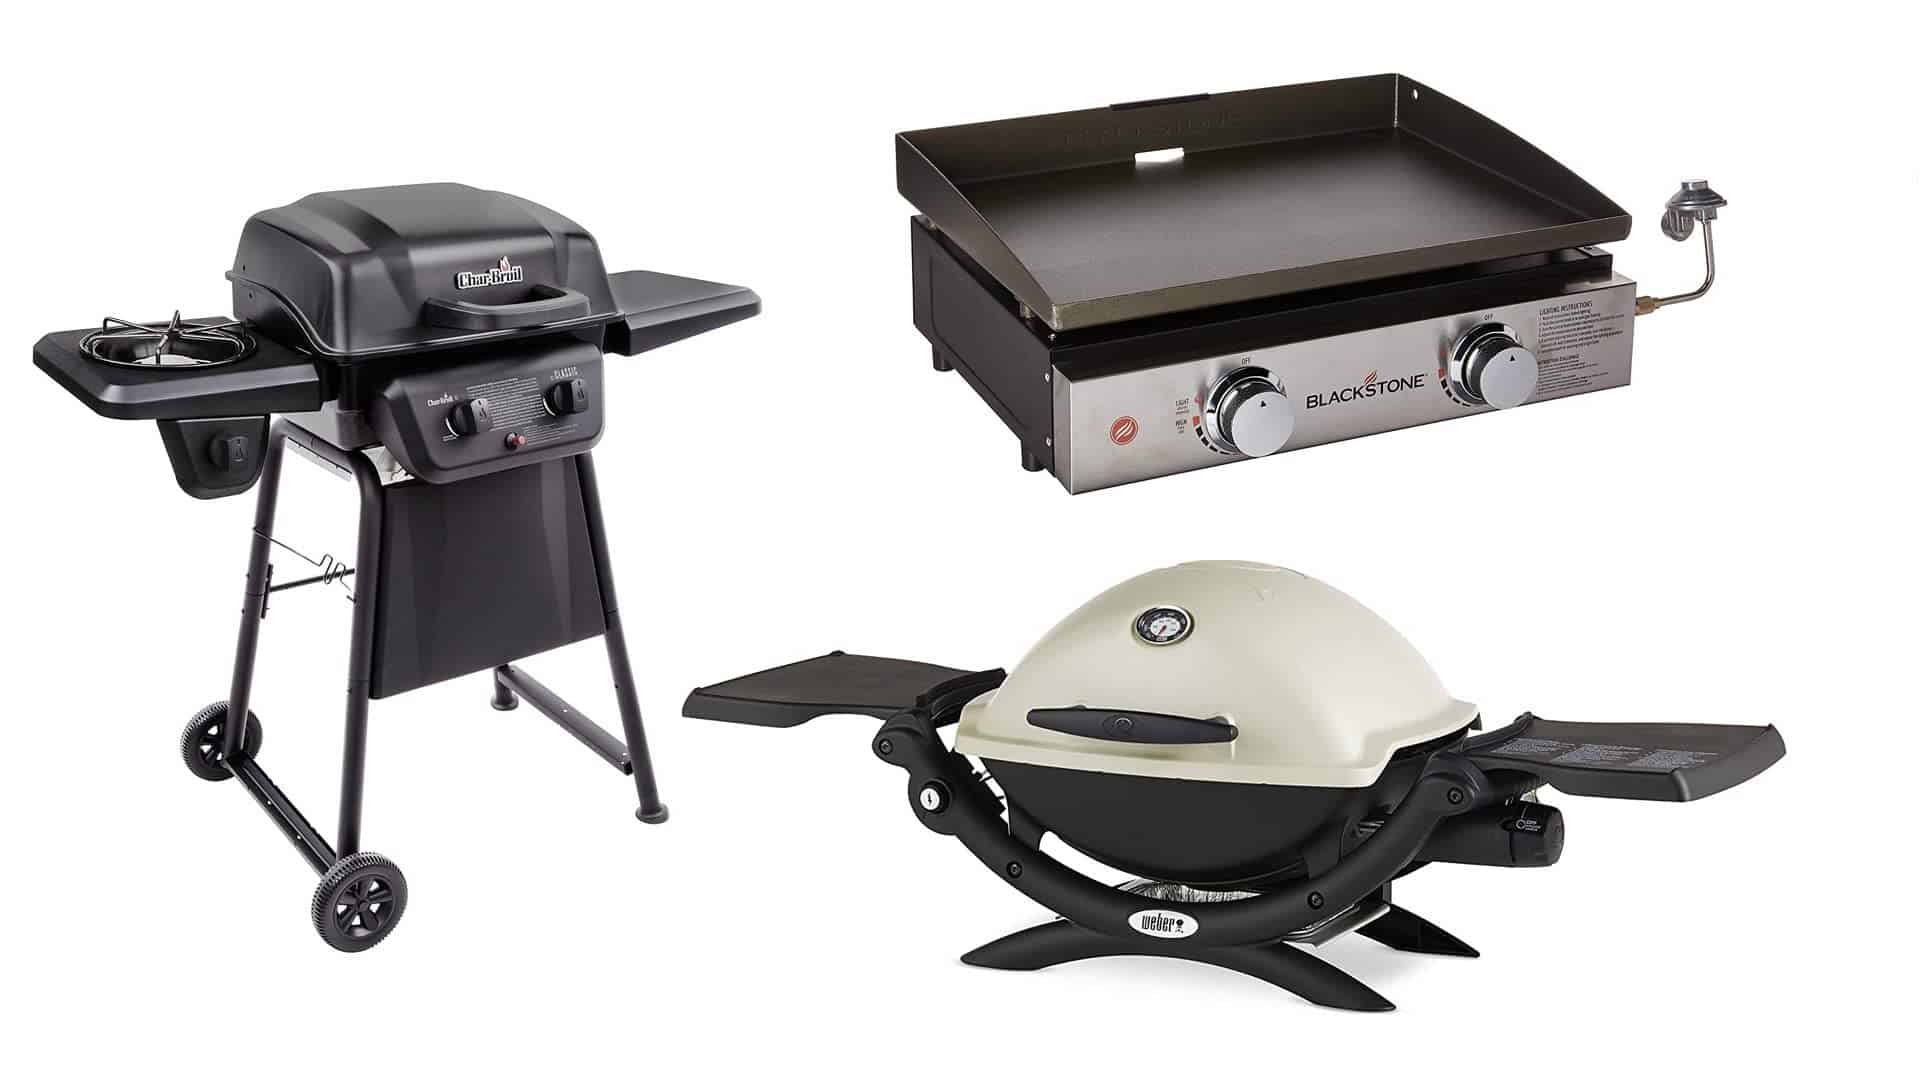 Best grill under 200 reviewed best options for a small budget